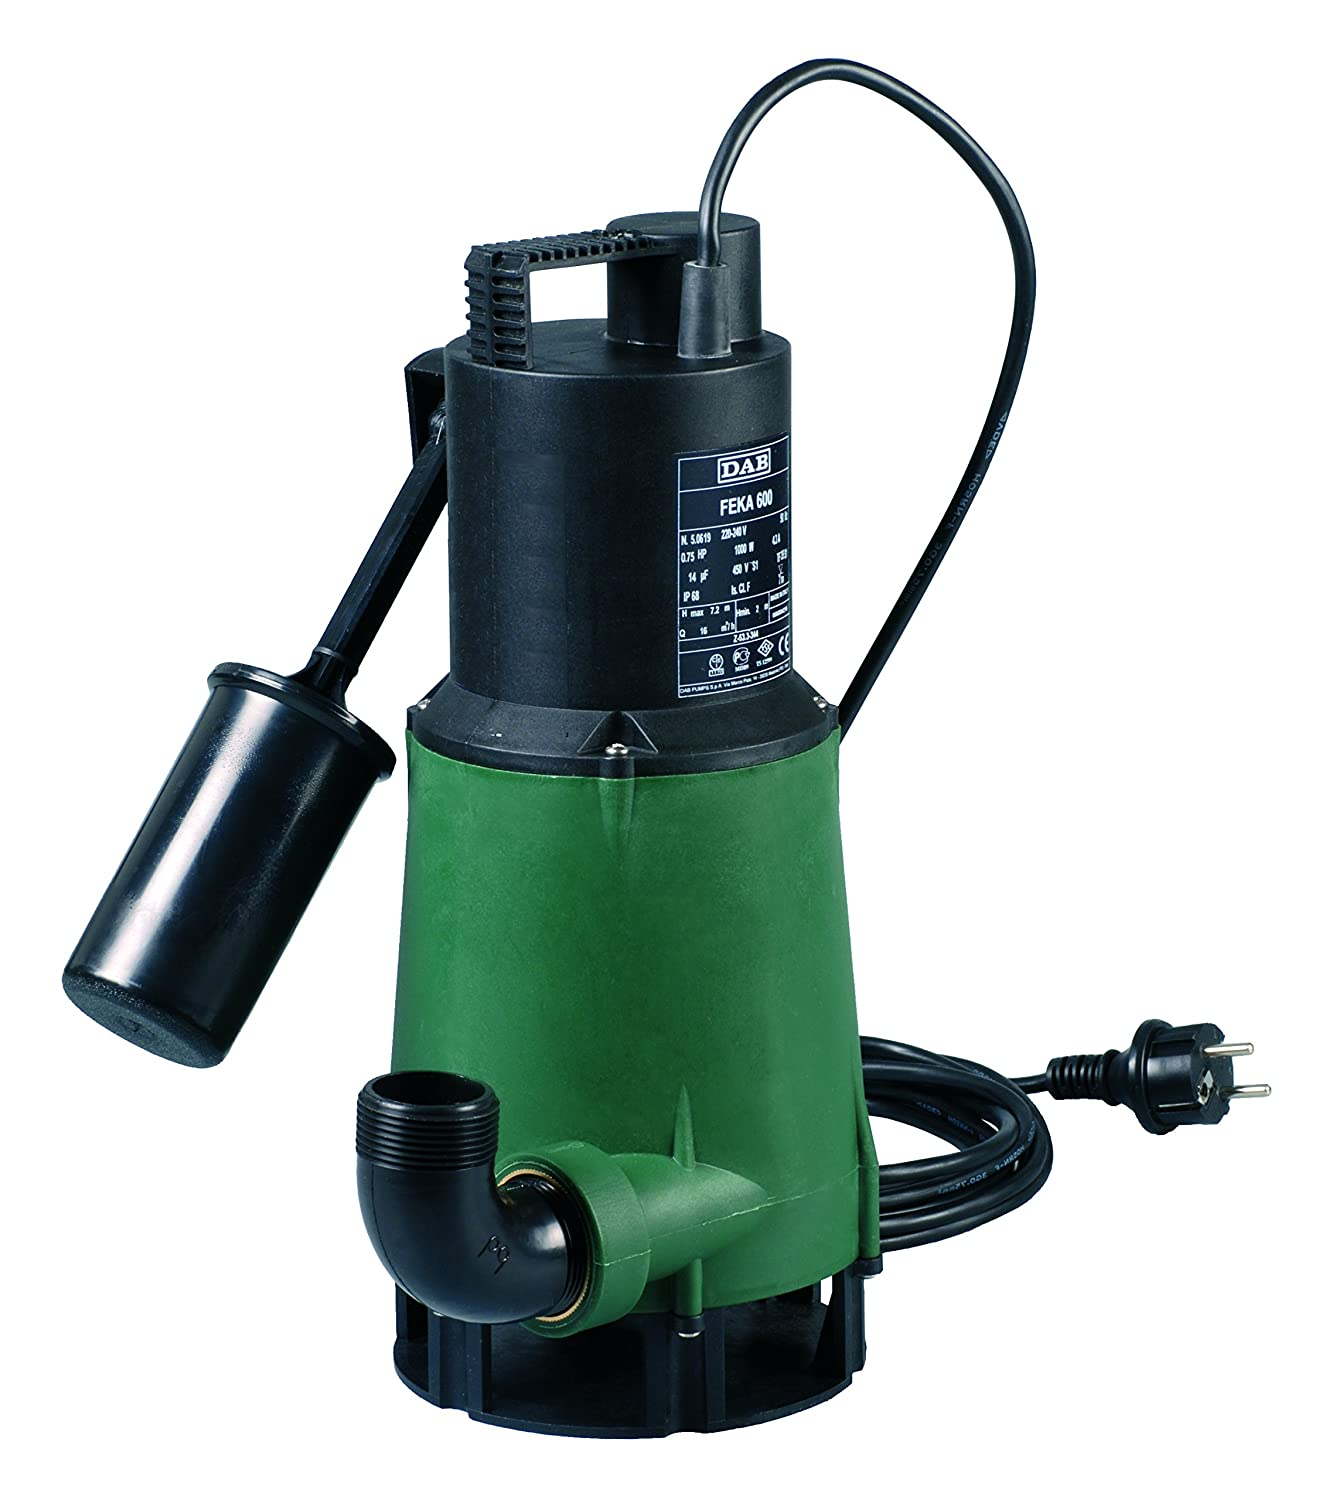 DAB Feka VS 750/M-A/ /Stainless Steel Juicer Submersible Pump with Float for Waste Water Drainage 0.75/kW//1/HP 1-Phase